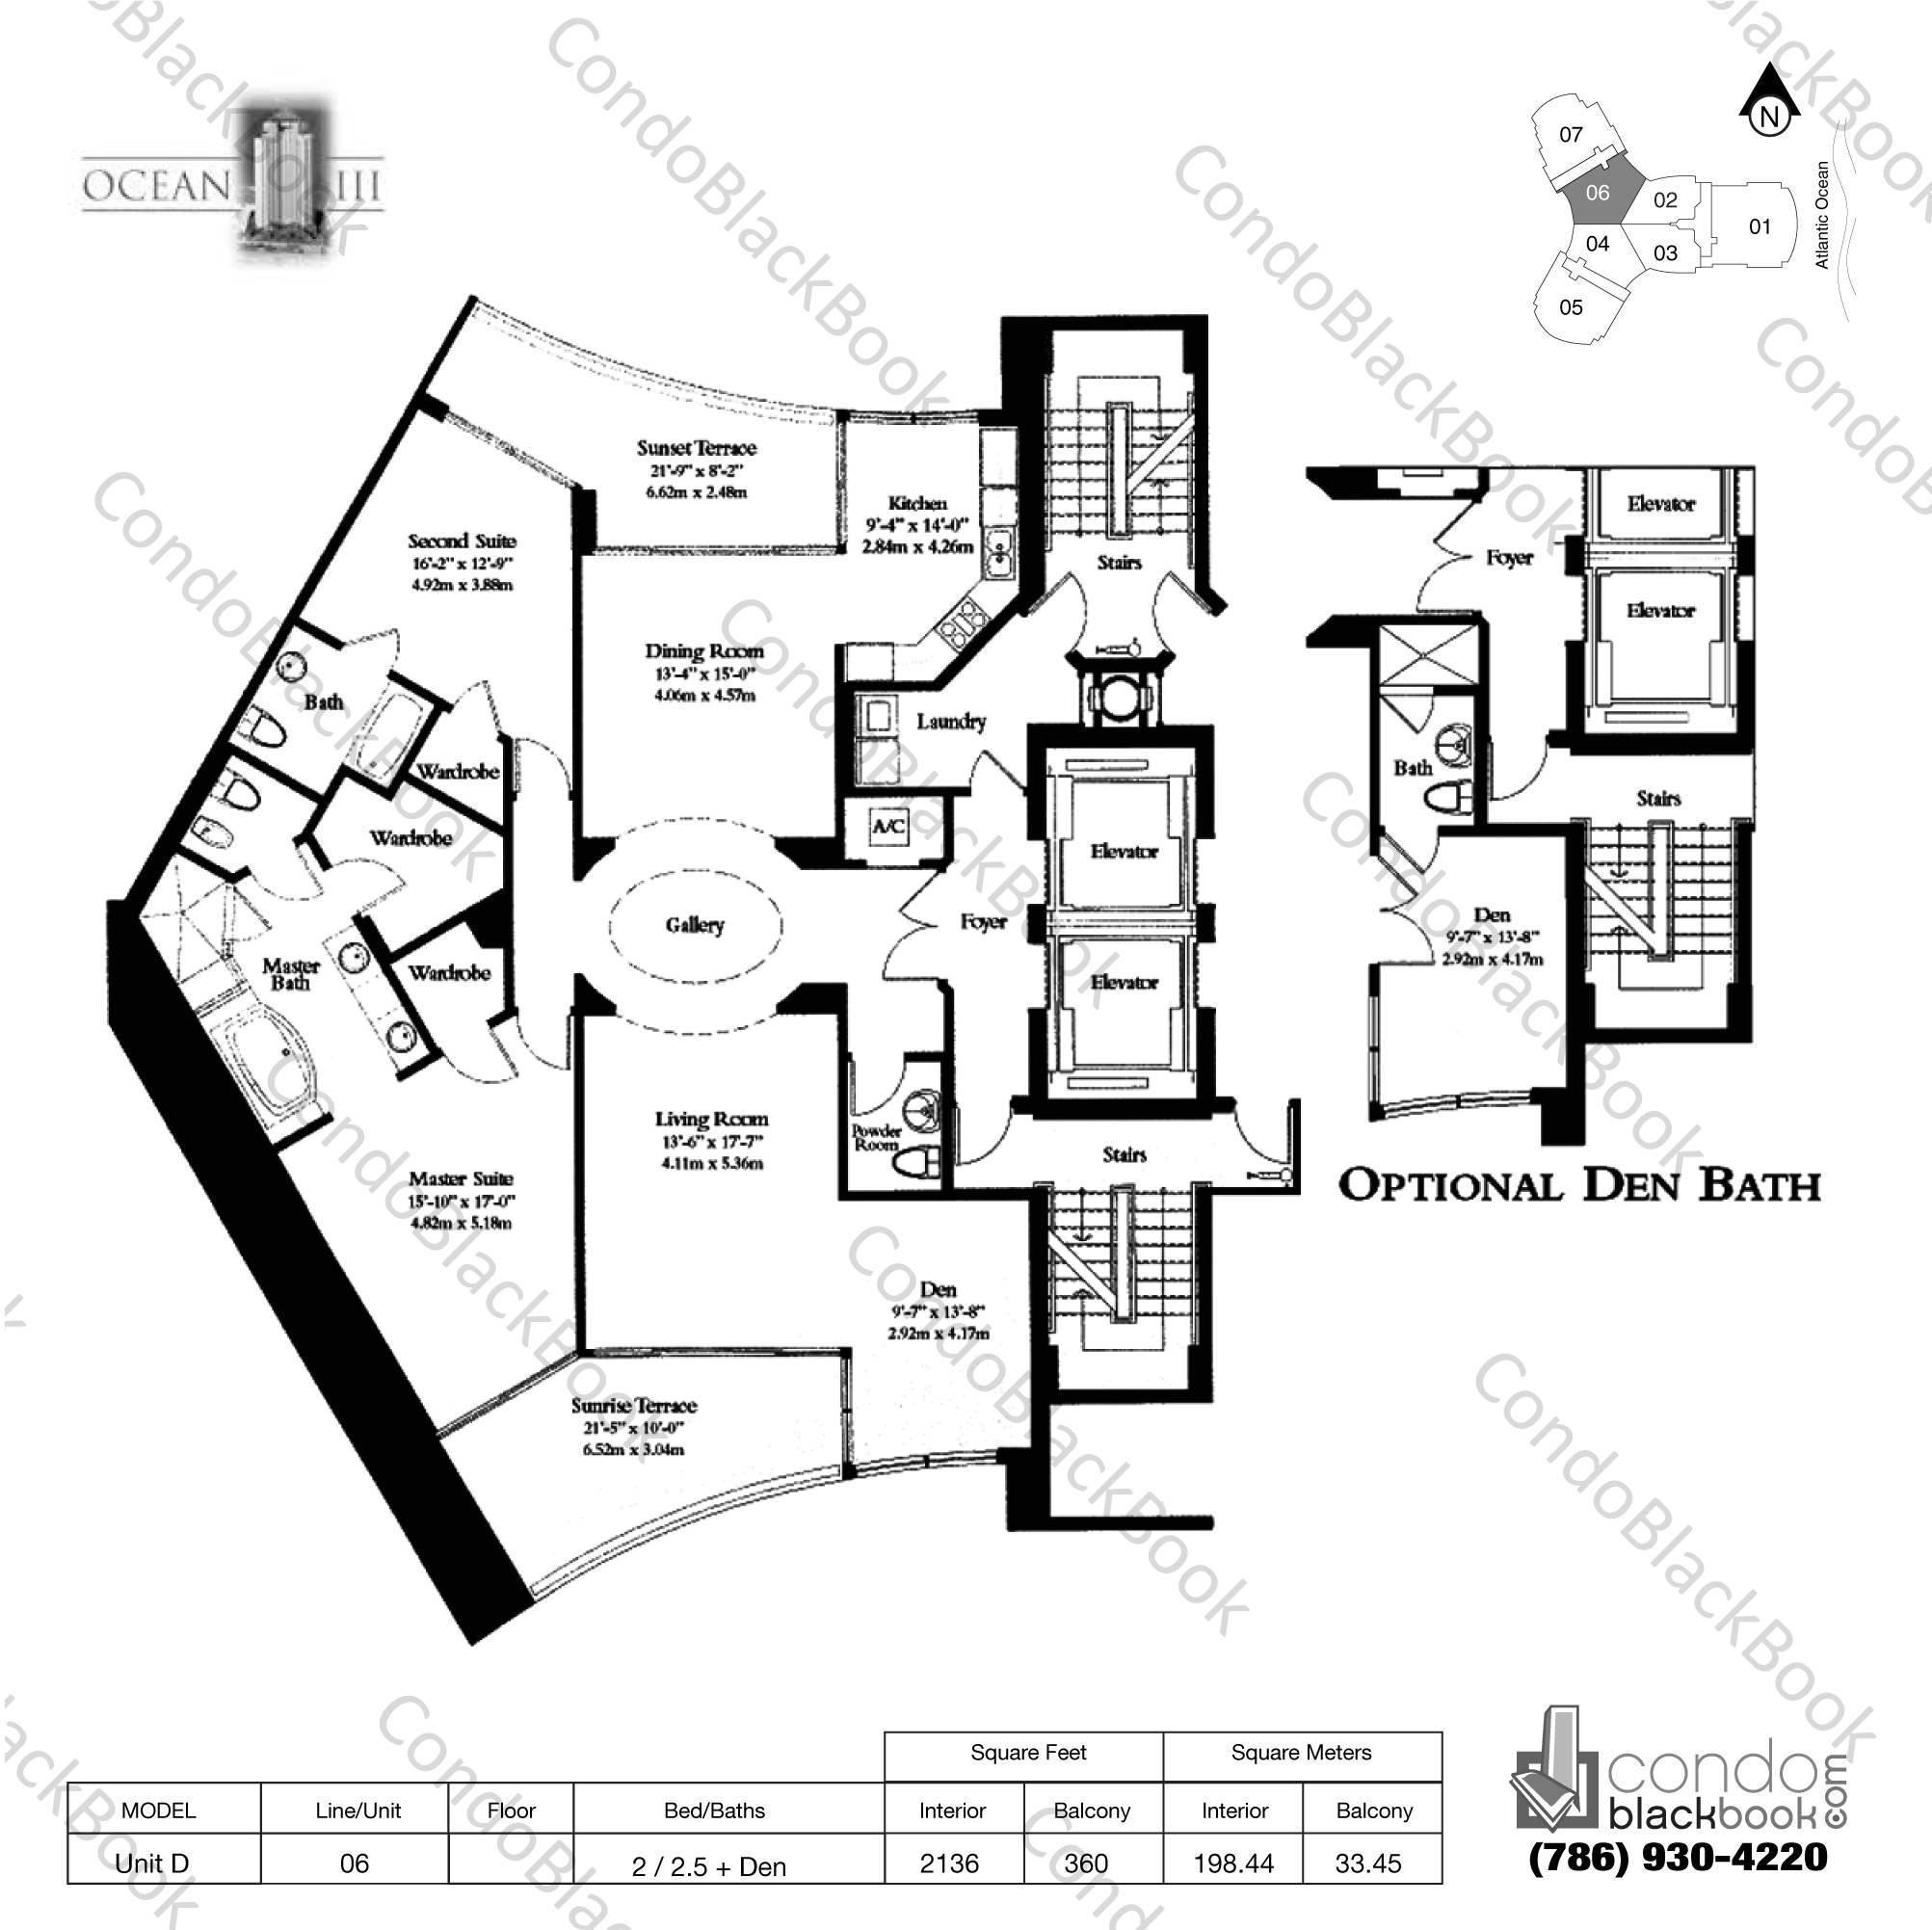 Floor plan for Ocean Three Sunny Isles Beach, model Unit D, line 06, 2 / 2.5 + Den bedrooms, 2136 sq ft